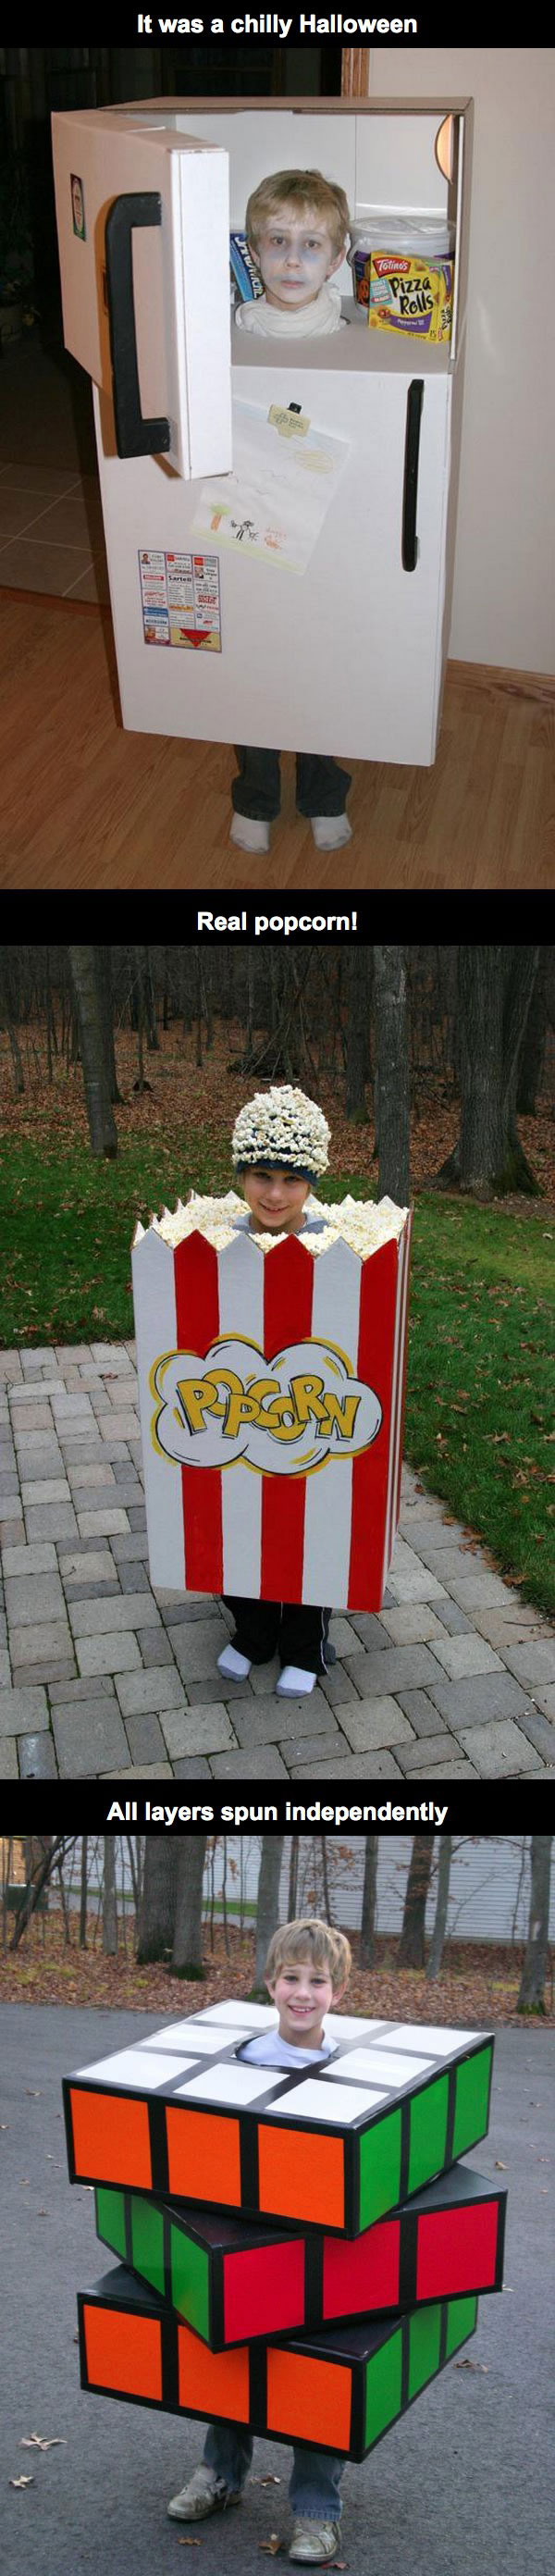 three box based halloween costume ideas for kids